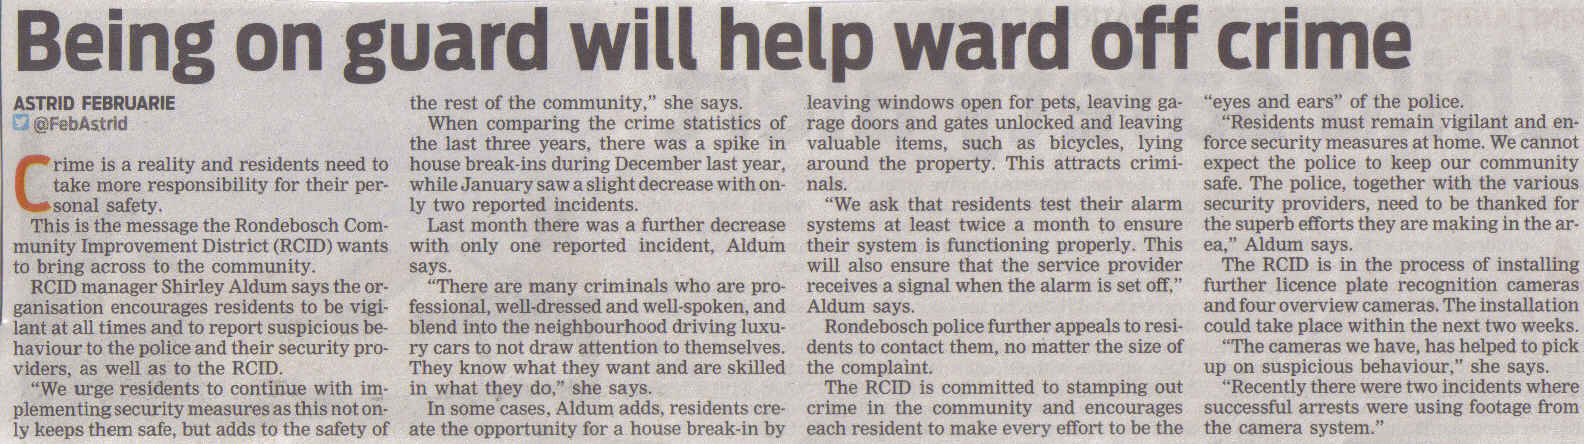 Being on guard will ward off crime (People's Post, 13 March 2013)